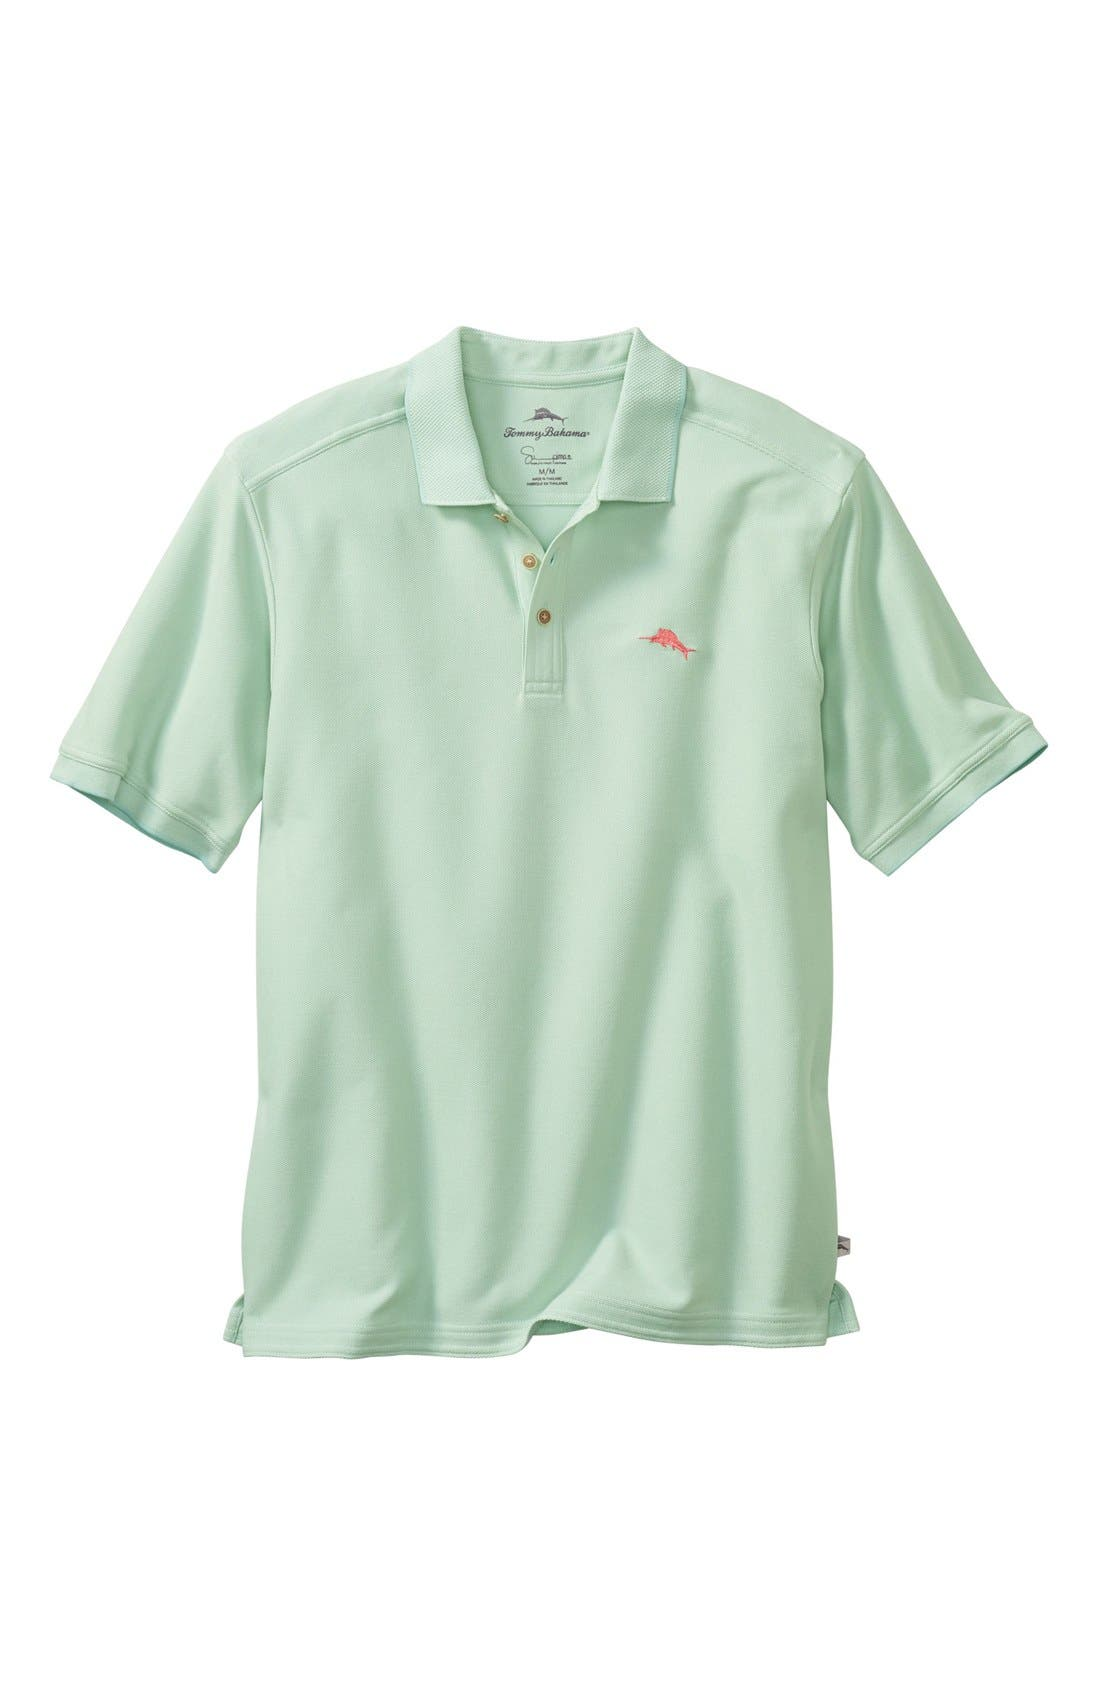 'The Emfielder' Original Fit Piqué Polo,                             Main thumbnail 37, color,